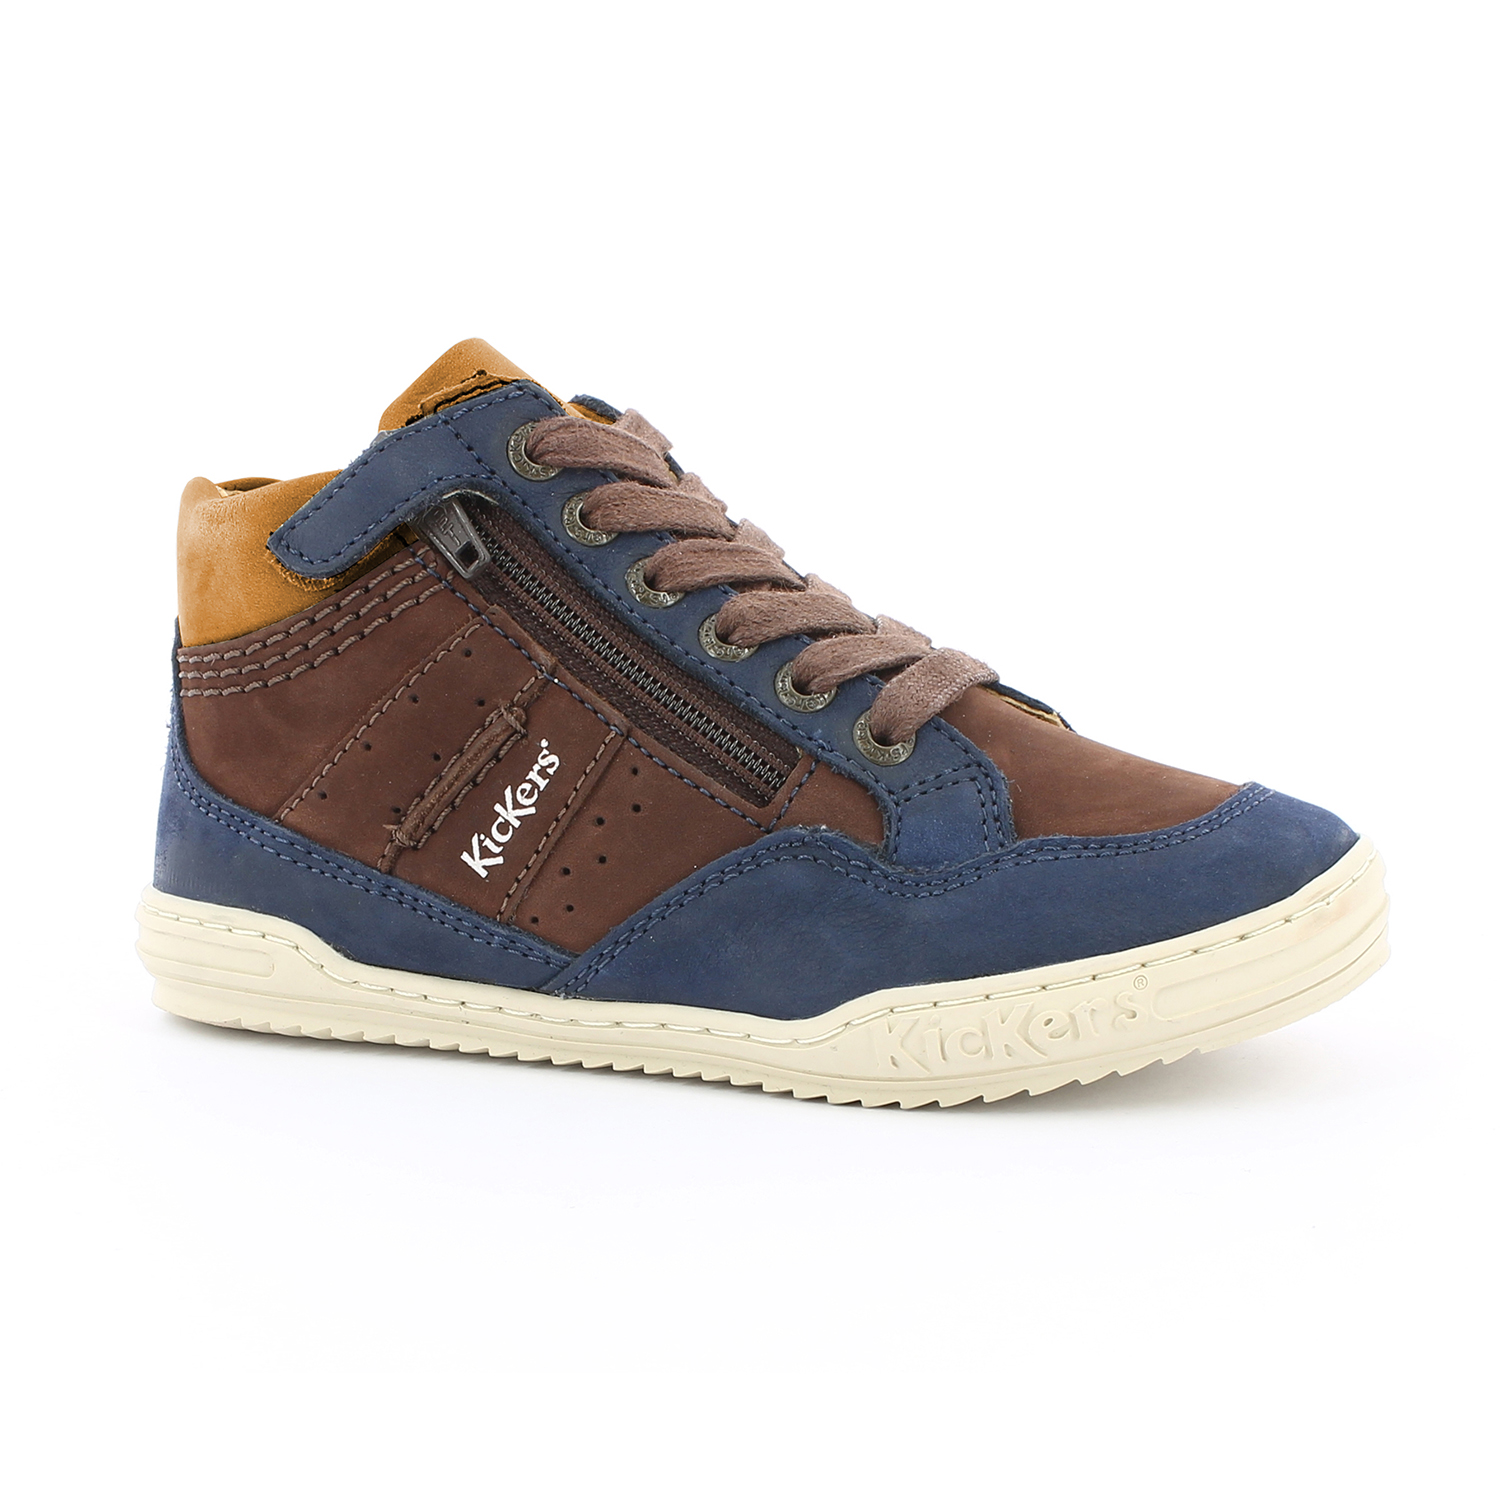 KICKERS - Παιδικά δερμάτινα μποτάκια JUSTICIER KICKERS καφέ - Roe ... b480d2f79ee